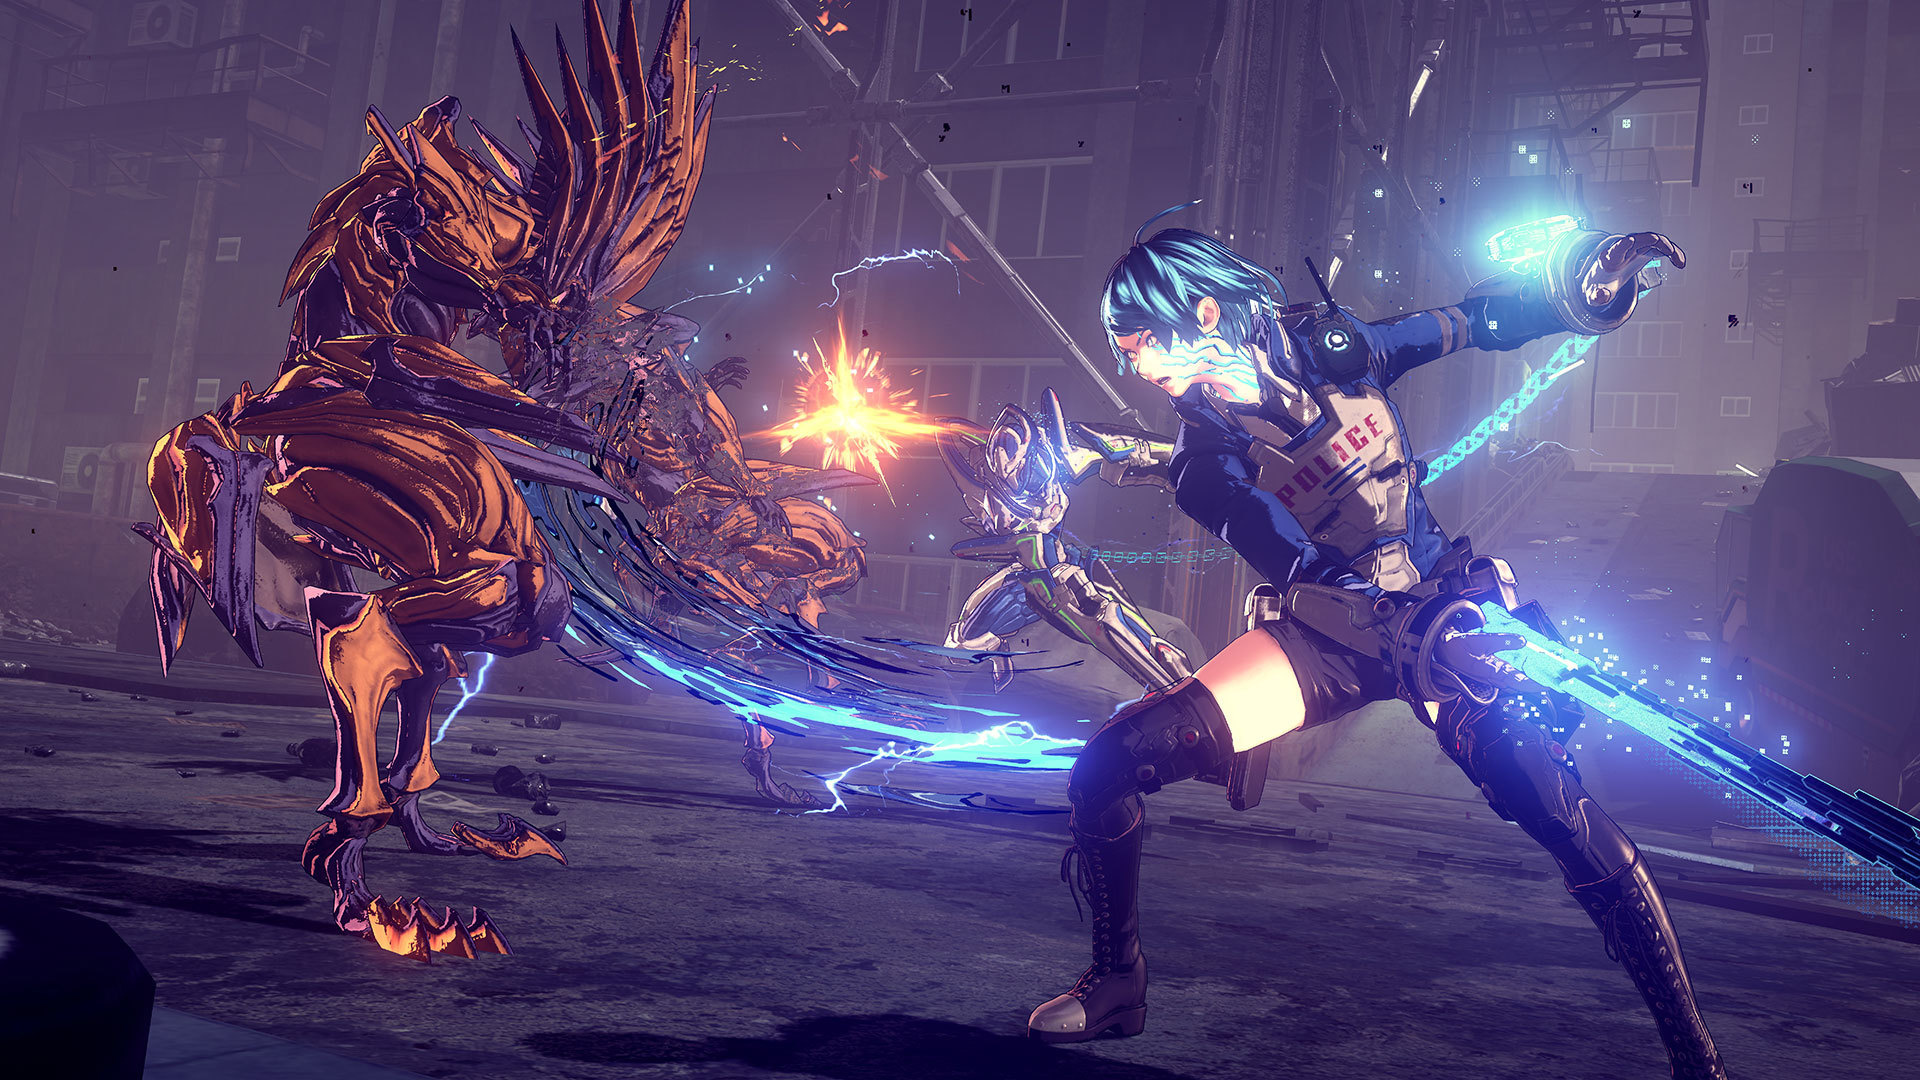 UK Charts: Astral Chain Becomes PlatinumGames' First UK Number One